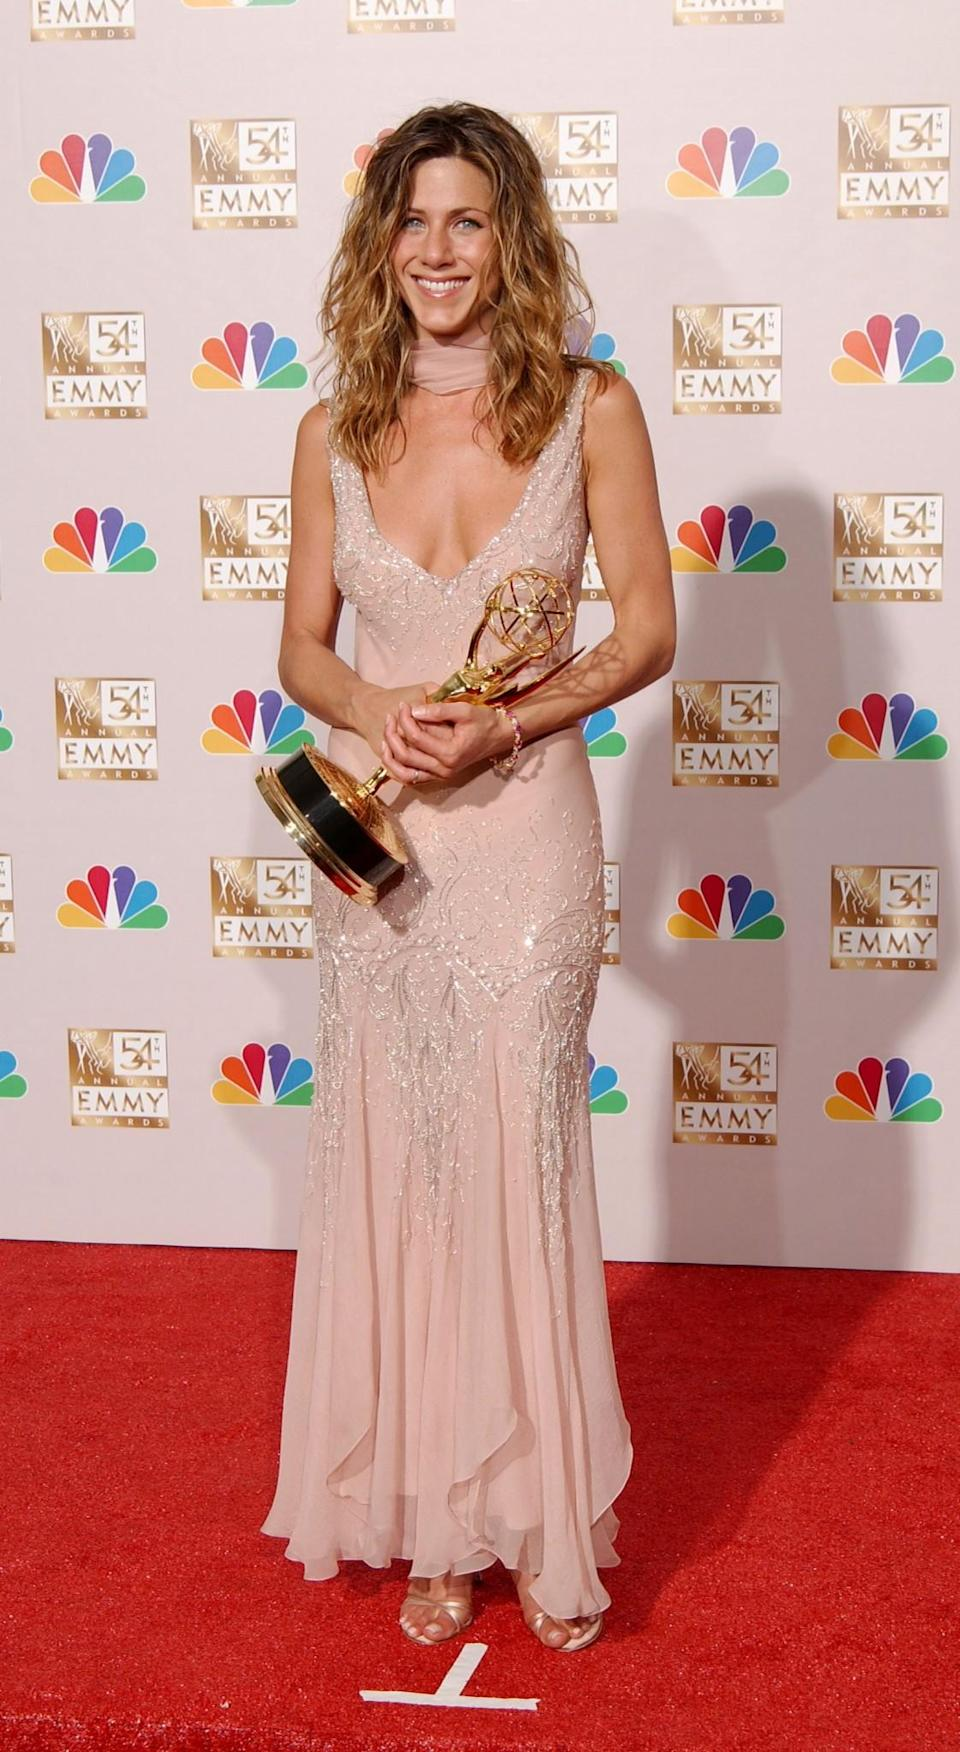 <p>Jennifer couldn't hide her grin after winning an Emmy in a blush pink low-cut gown and chic scarf. <i>[Photo: Getty]</i> </p>